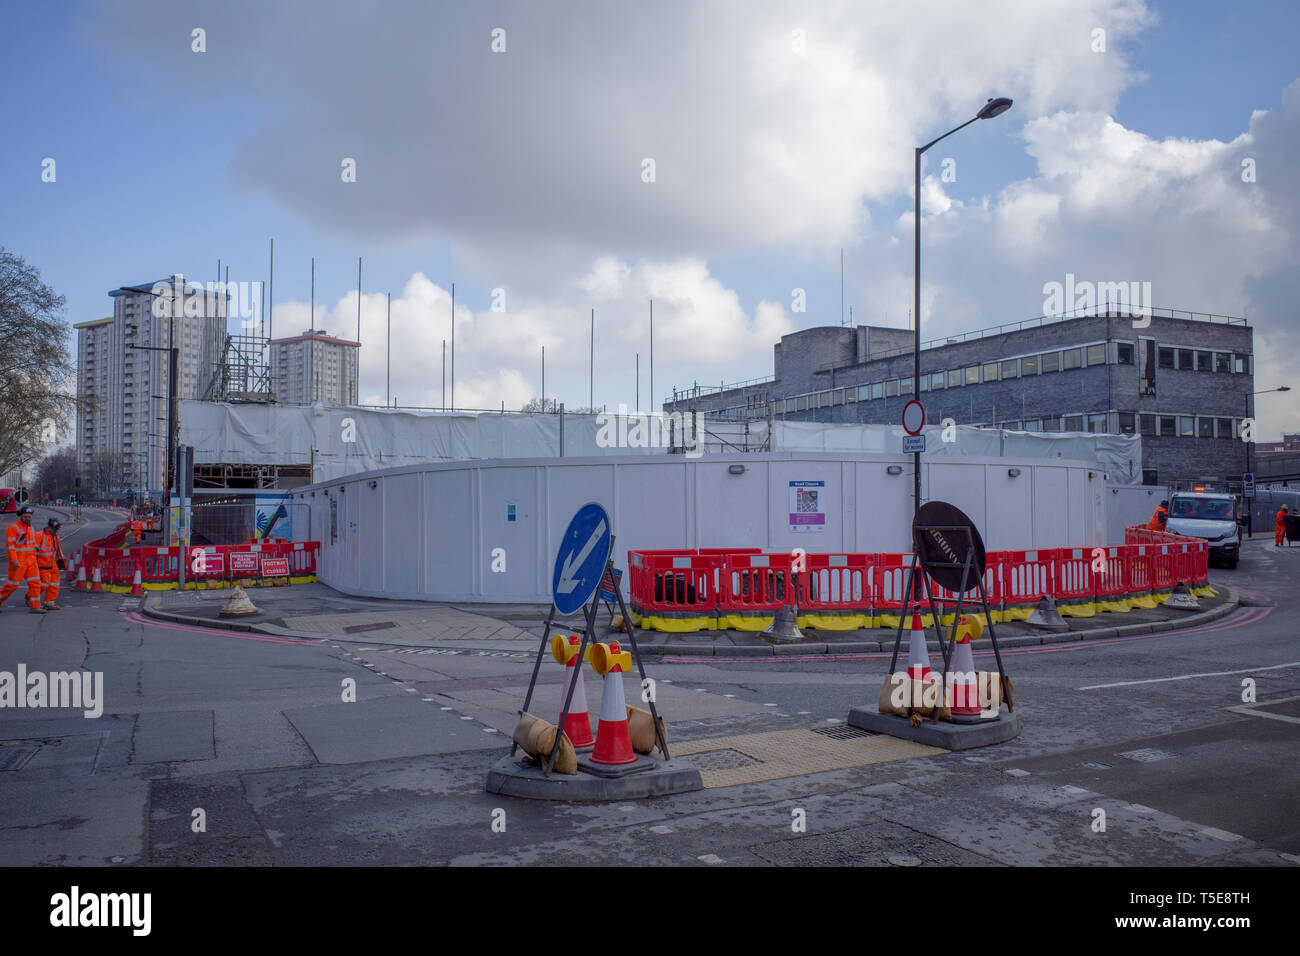 Camden, London, April 2019, work in progress of the construction of the HS2 high speed rail line near Euston on Hampstead Road. - Stock Image